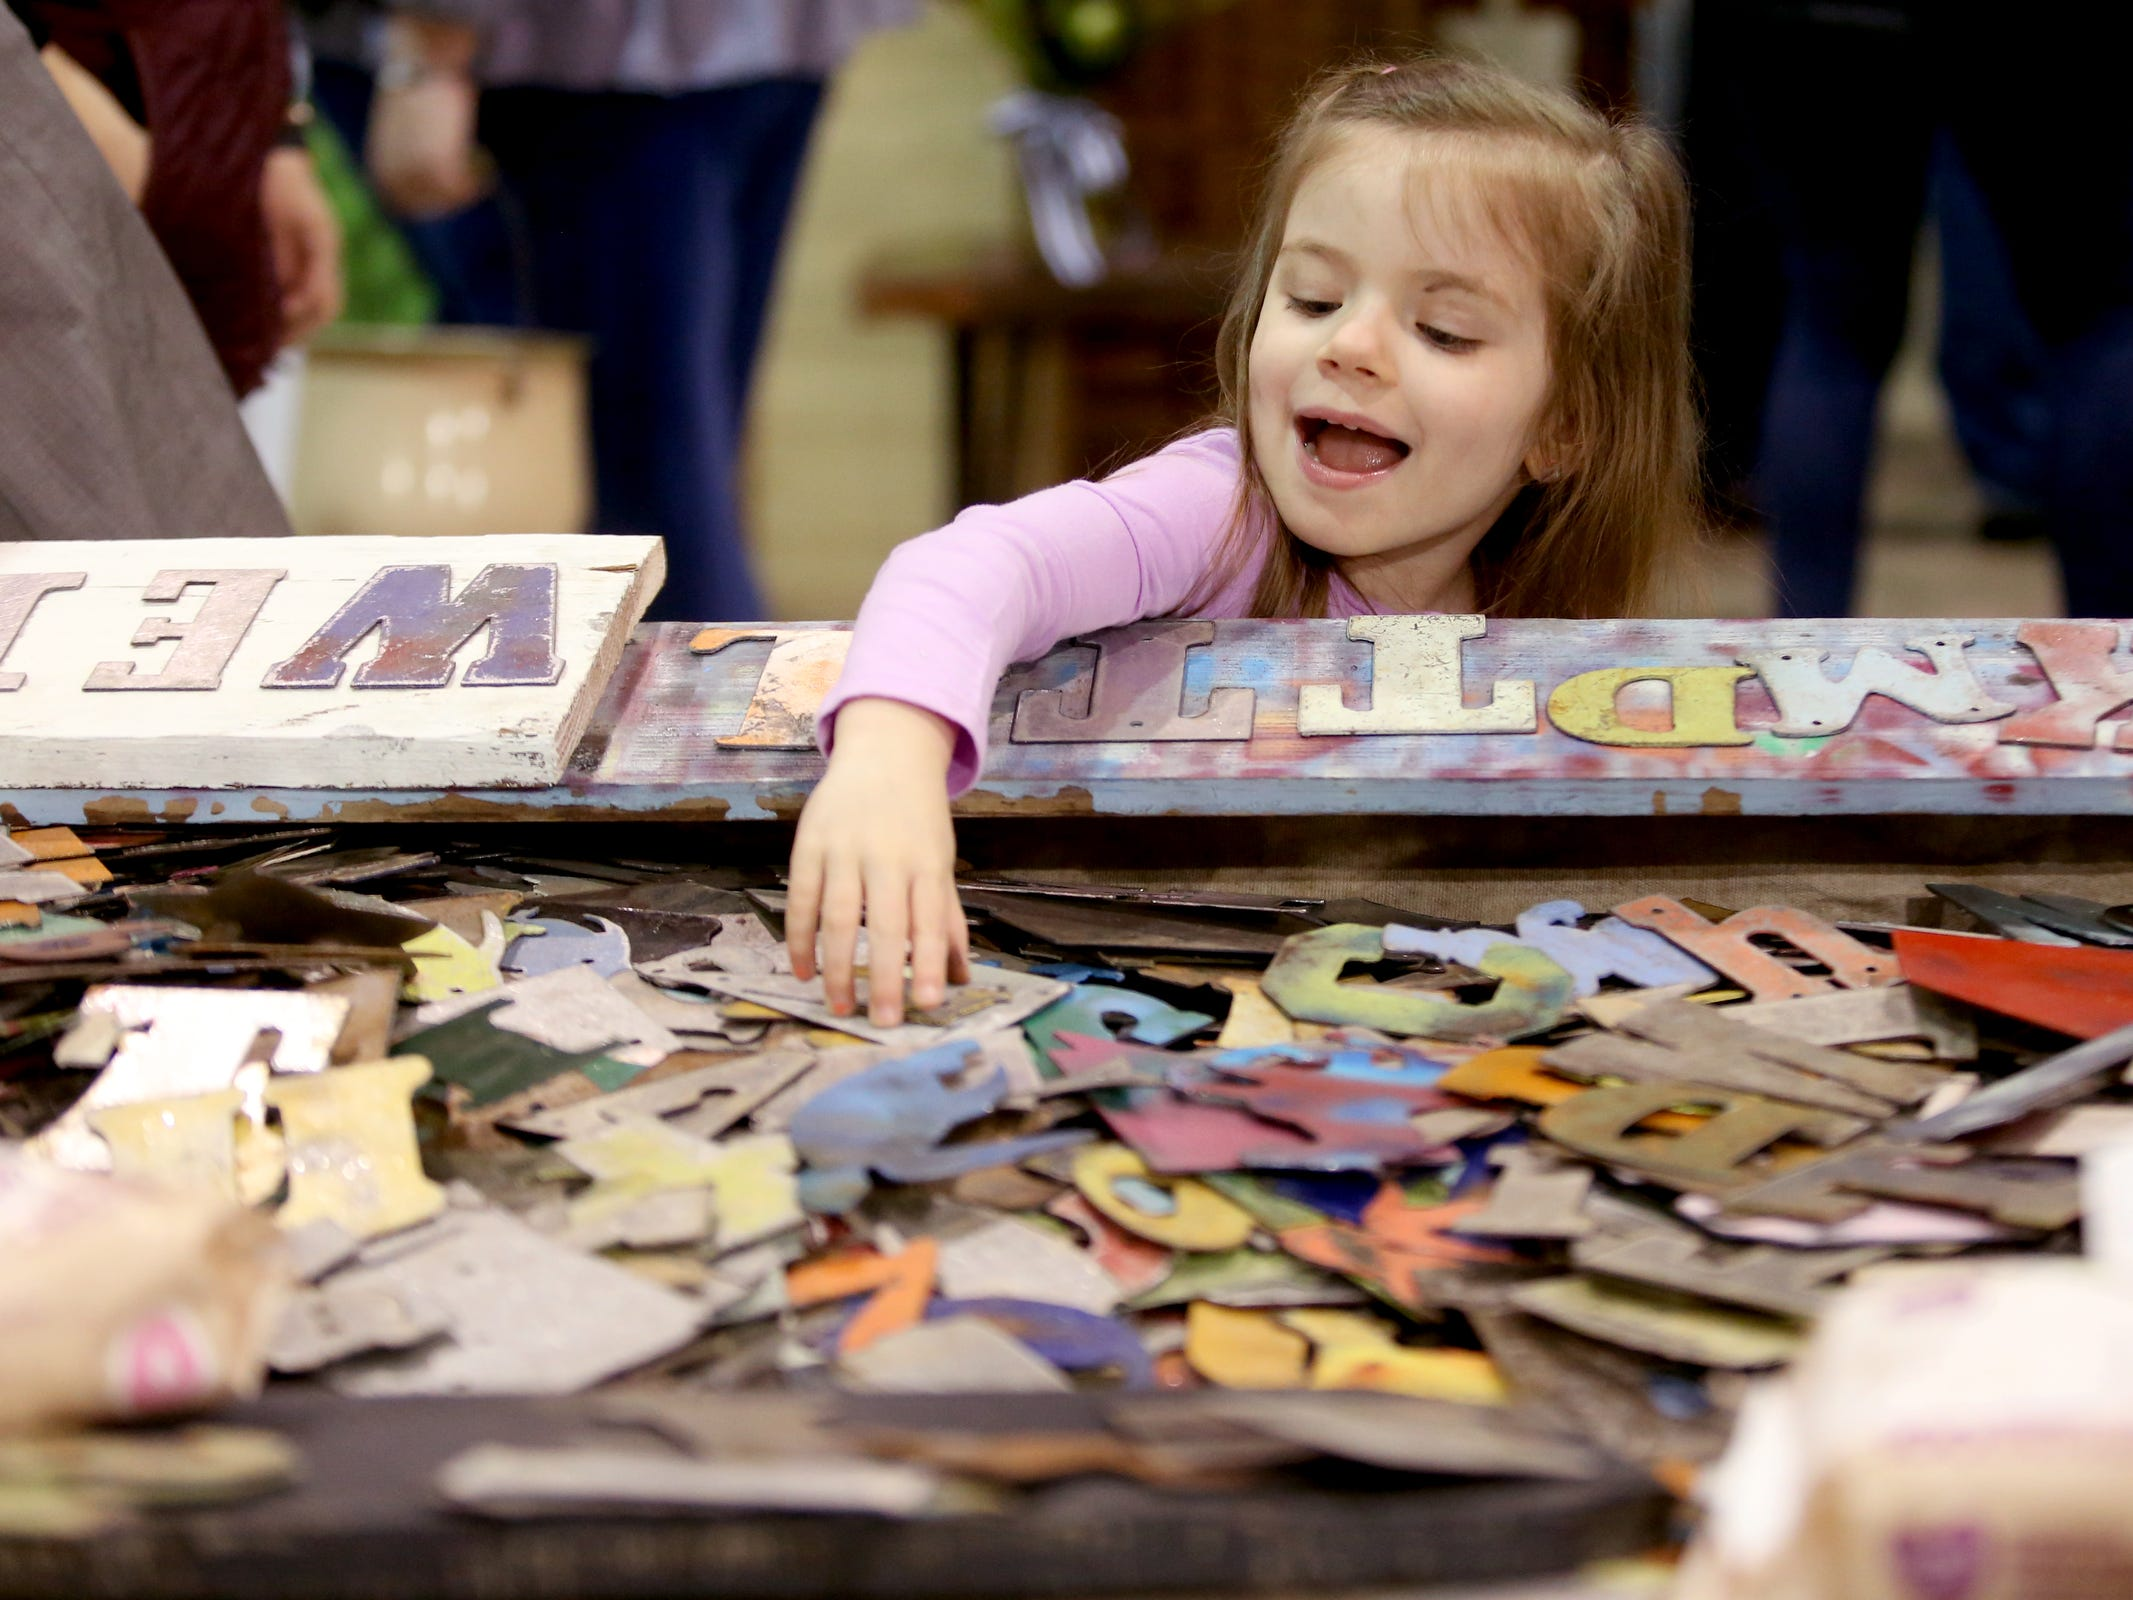 McKenzie Moreland, 4, of Eugene, looks through letters as her mom makes a custom sign during The Great Junk Hunt, a traveling vintage market, at the Oregon State Fairgrounds in Salem on April 13, 2019.